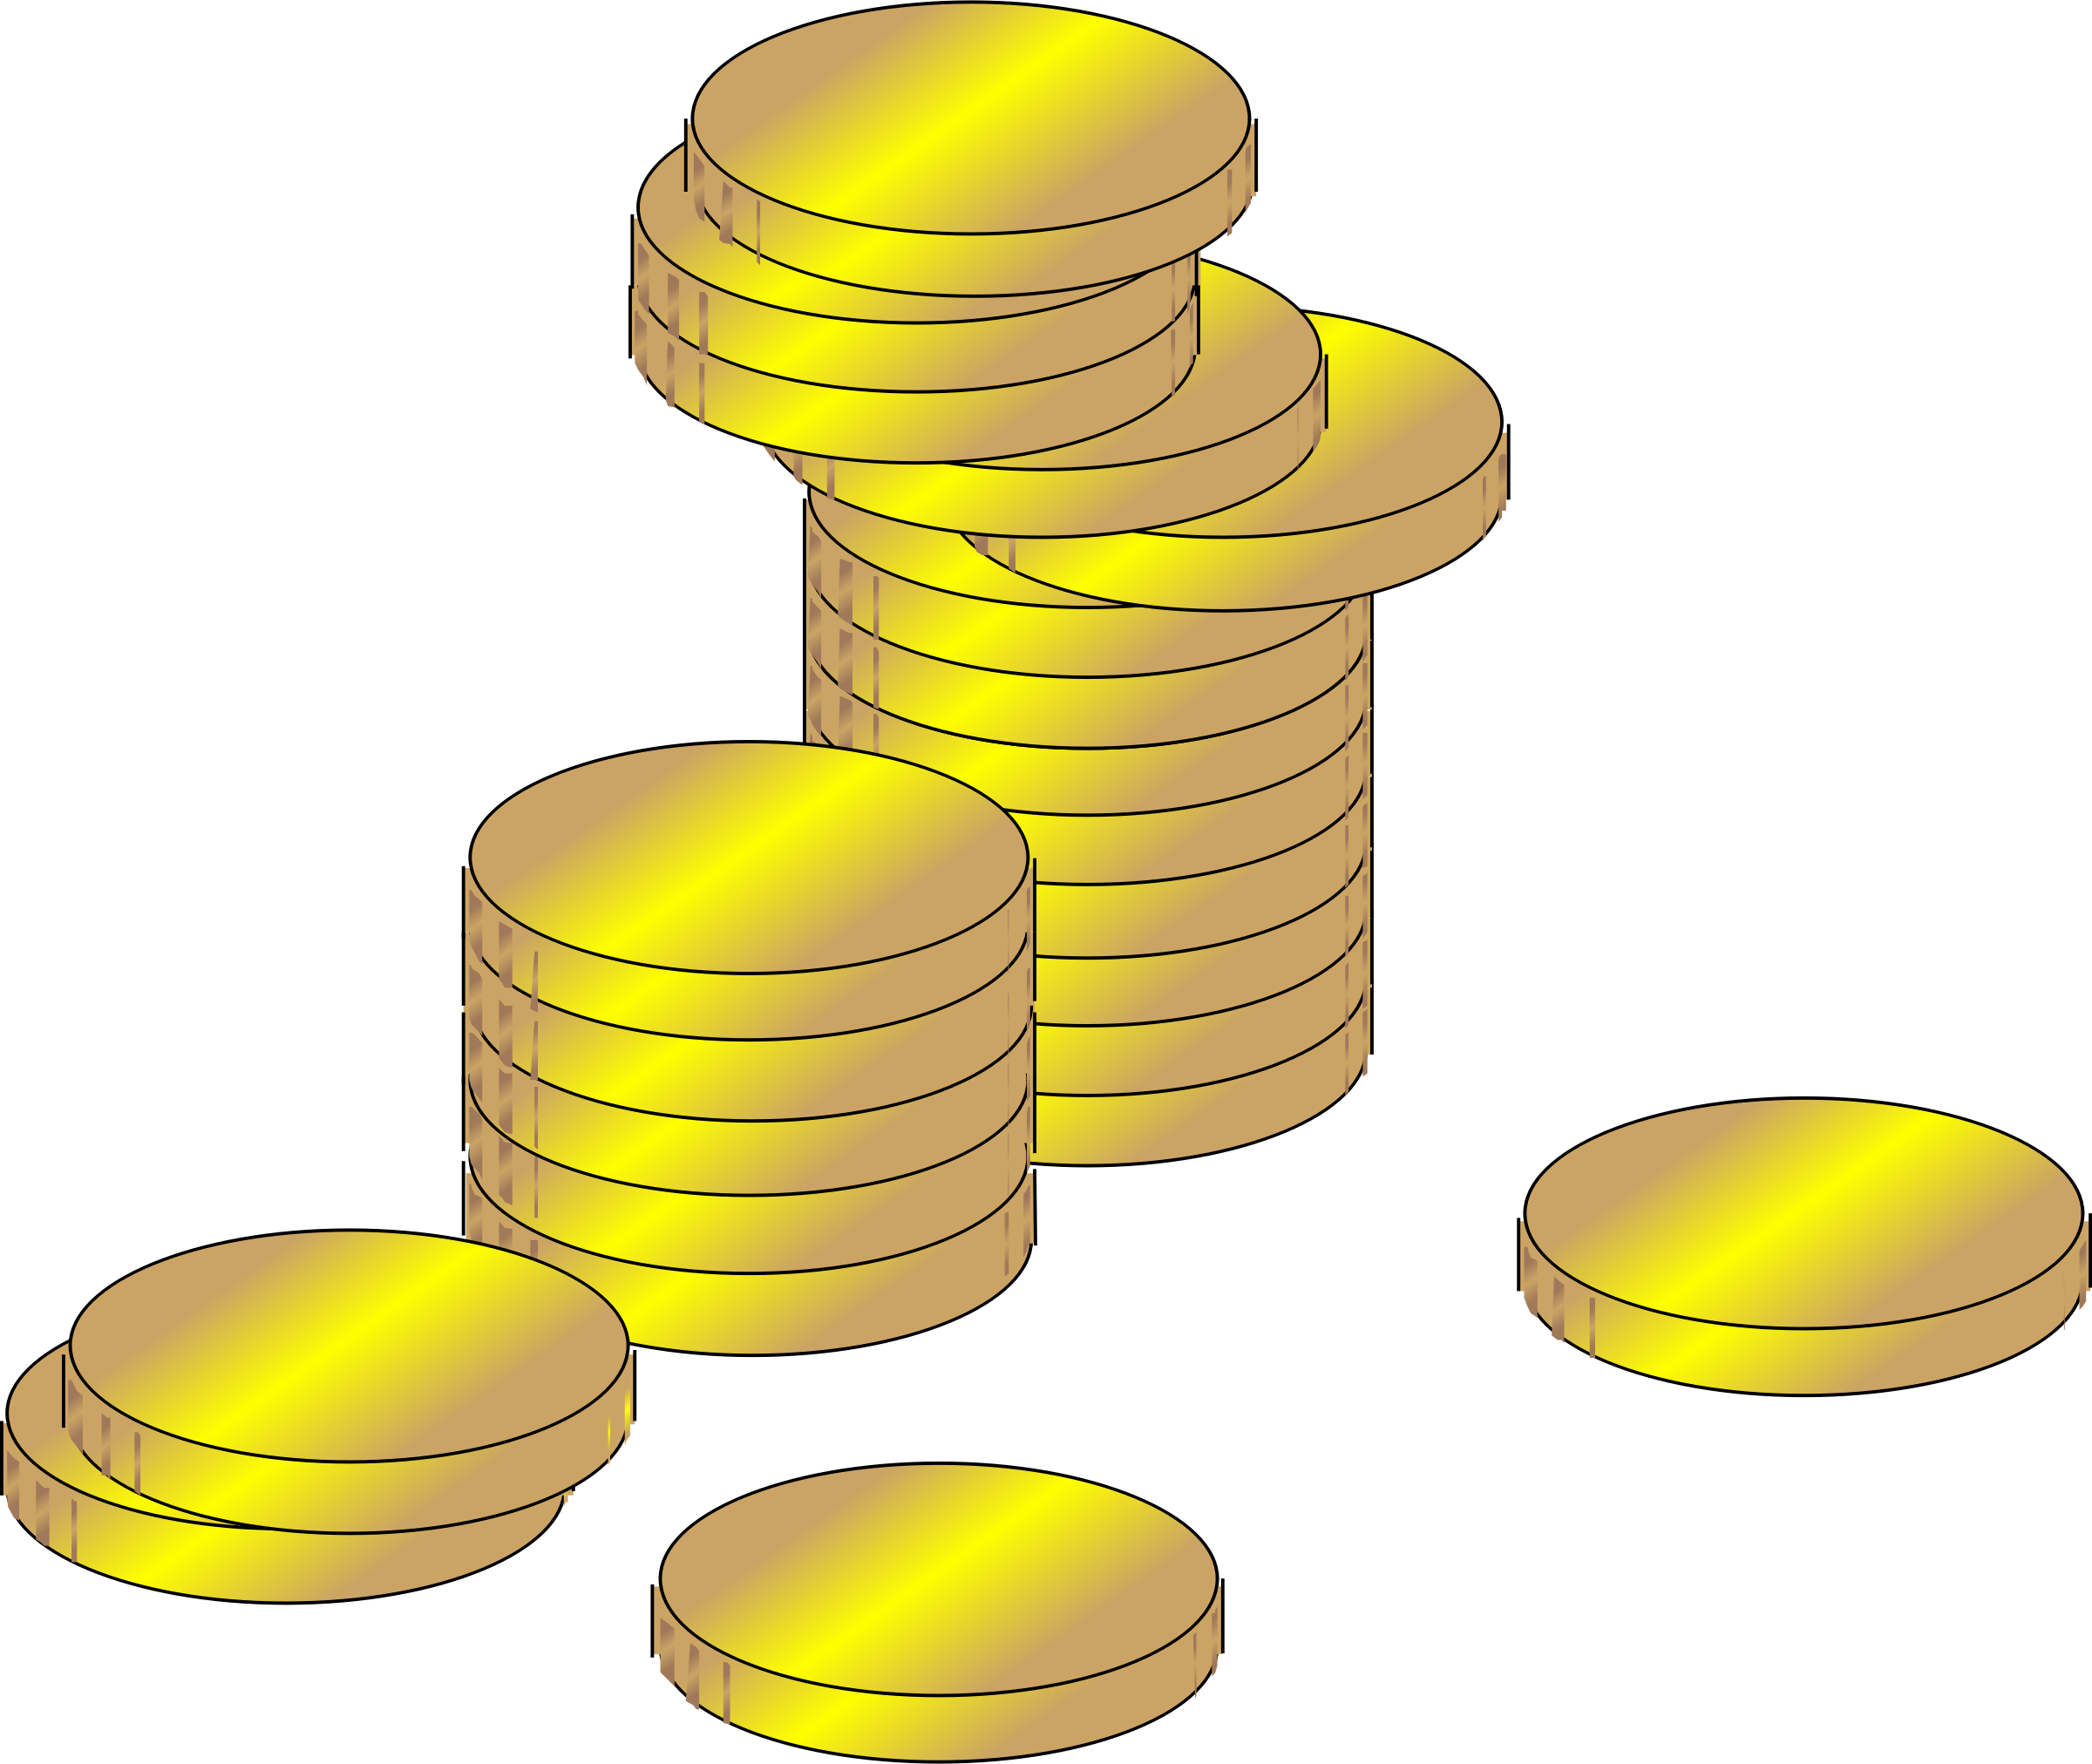 picture transparent stock Coins clipart. Gold coin free on.